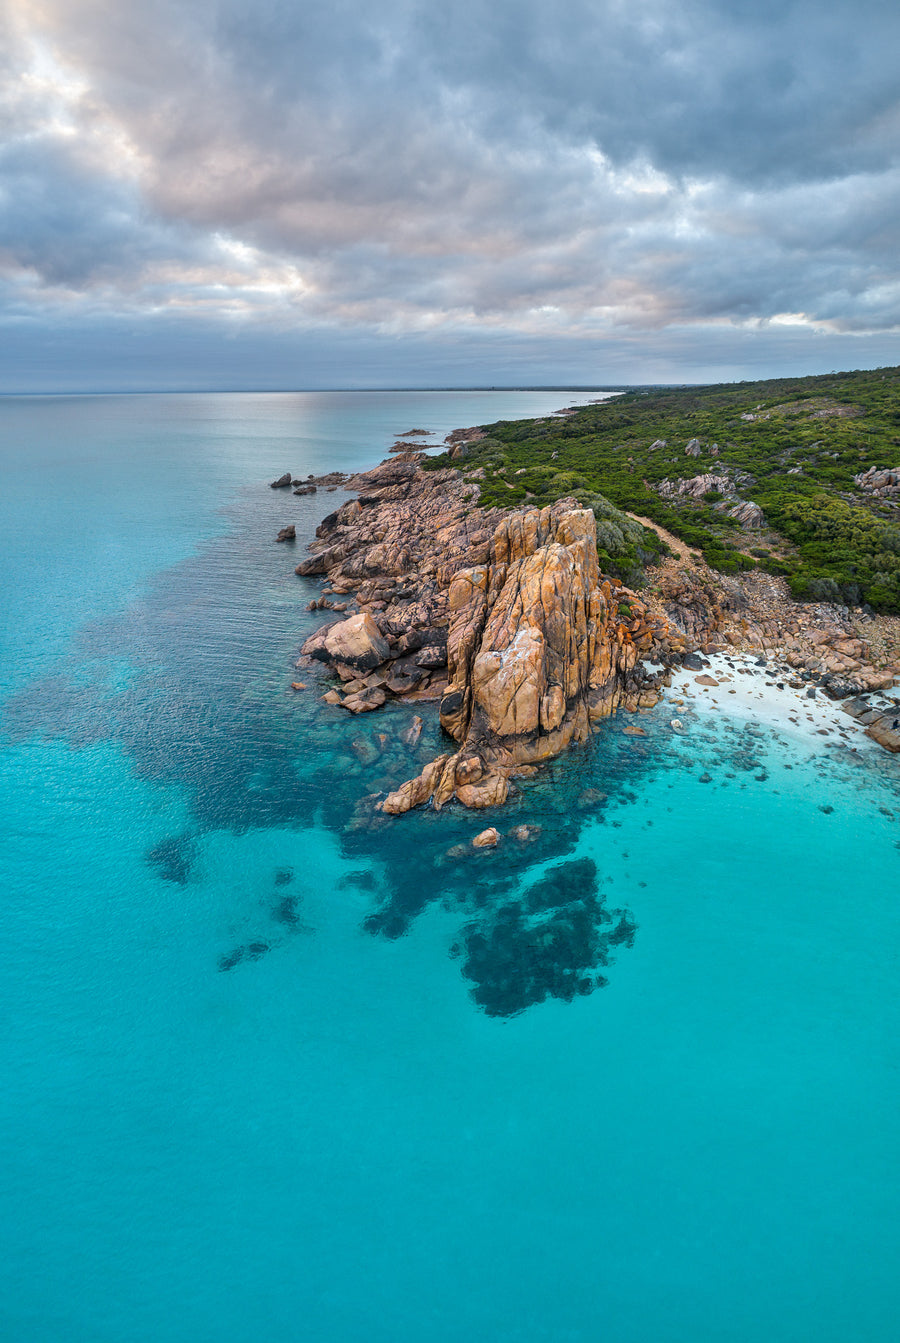 Aerial photograph of Castle Rock, Dunsborough, Western Australia.  The turquoise waters of Geographe Bay with Castle Rock in the foreground looking to Dunsborough in the background.  Morning sunrise with clouds over the calm blue water.